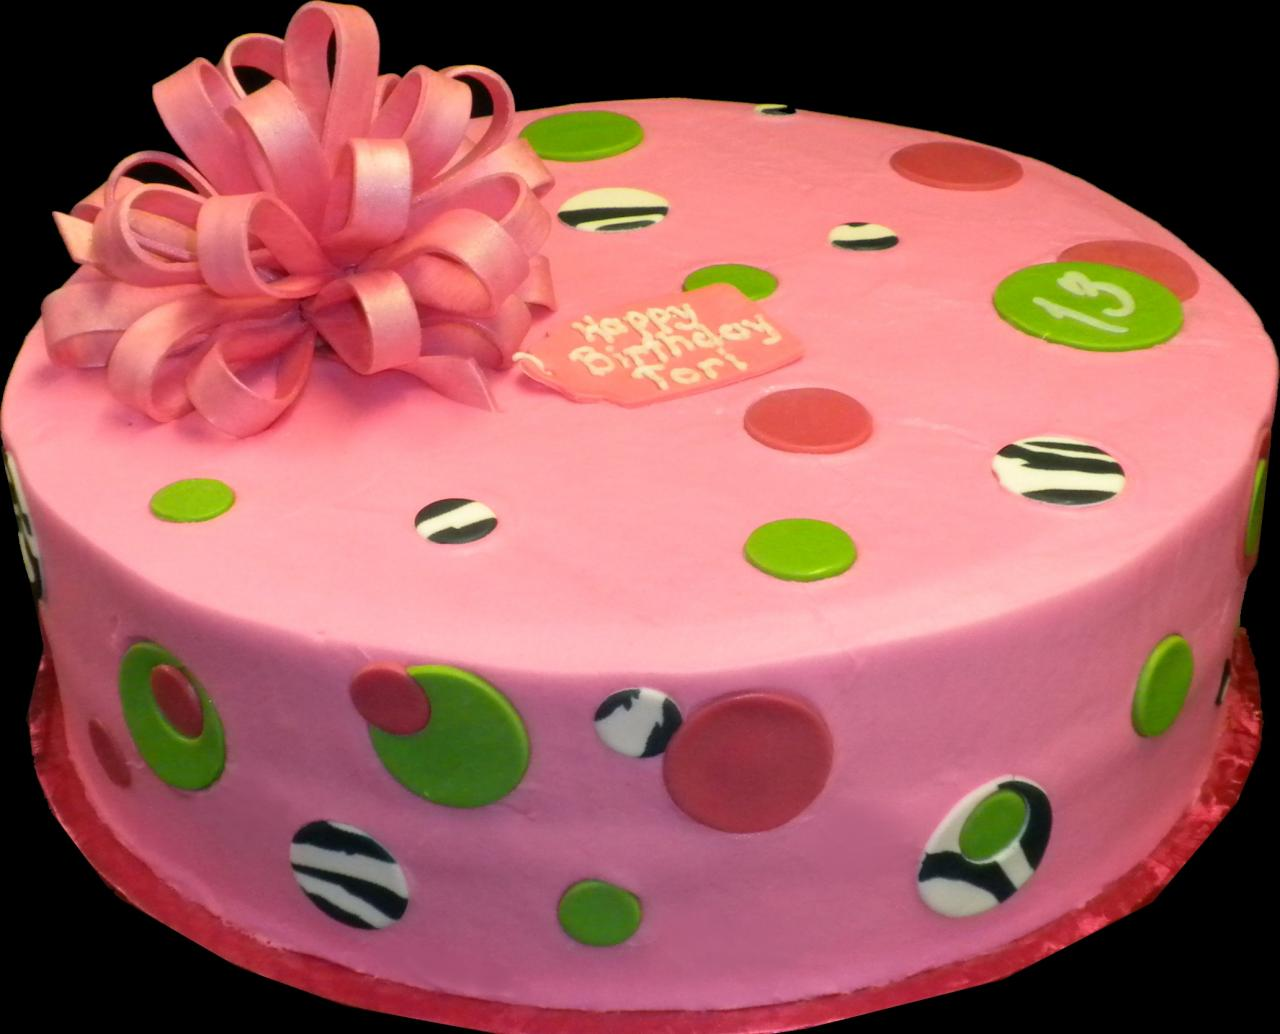 Birthday cakes sugar showcase dots and bow birthday cake pink buttercream iced round decorated with circles dots izmirmasajfo